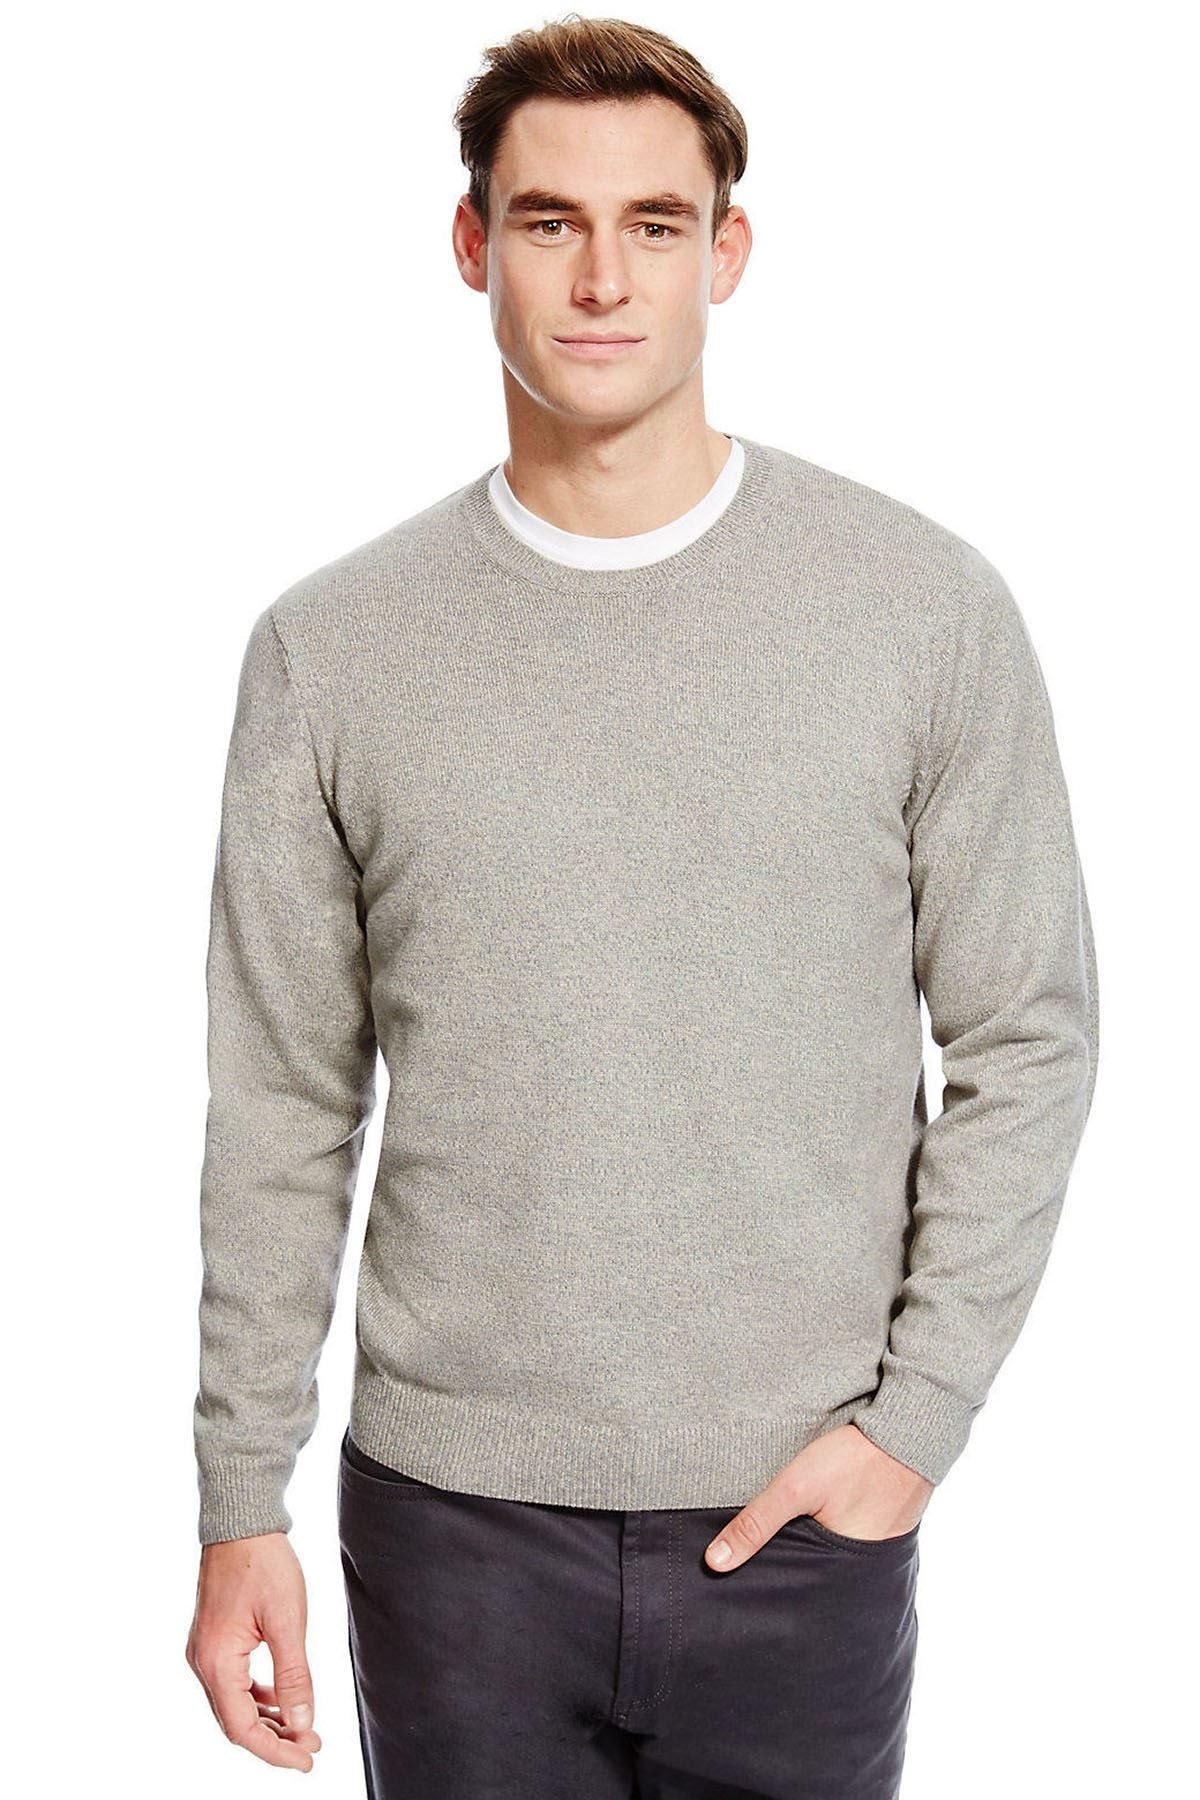 XL Ex M/&S Mens Casual Knitted Jumper Ex M/&S Cotton Pullover Sweater Sizes M